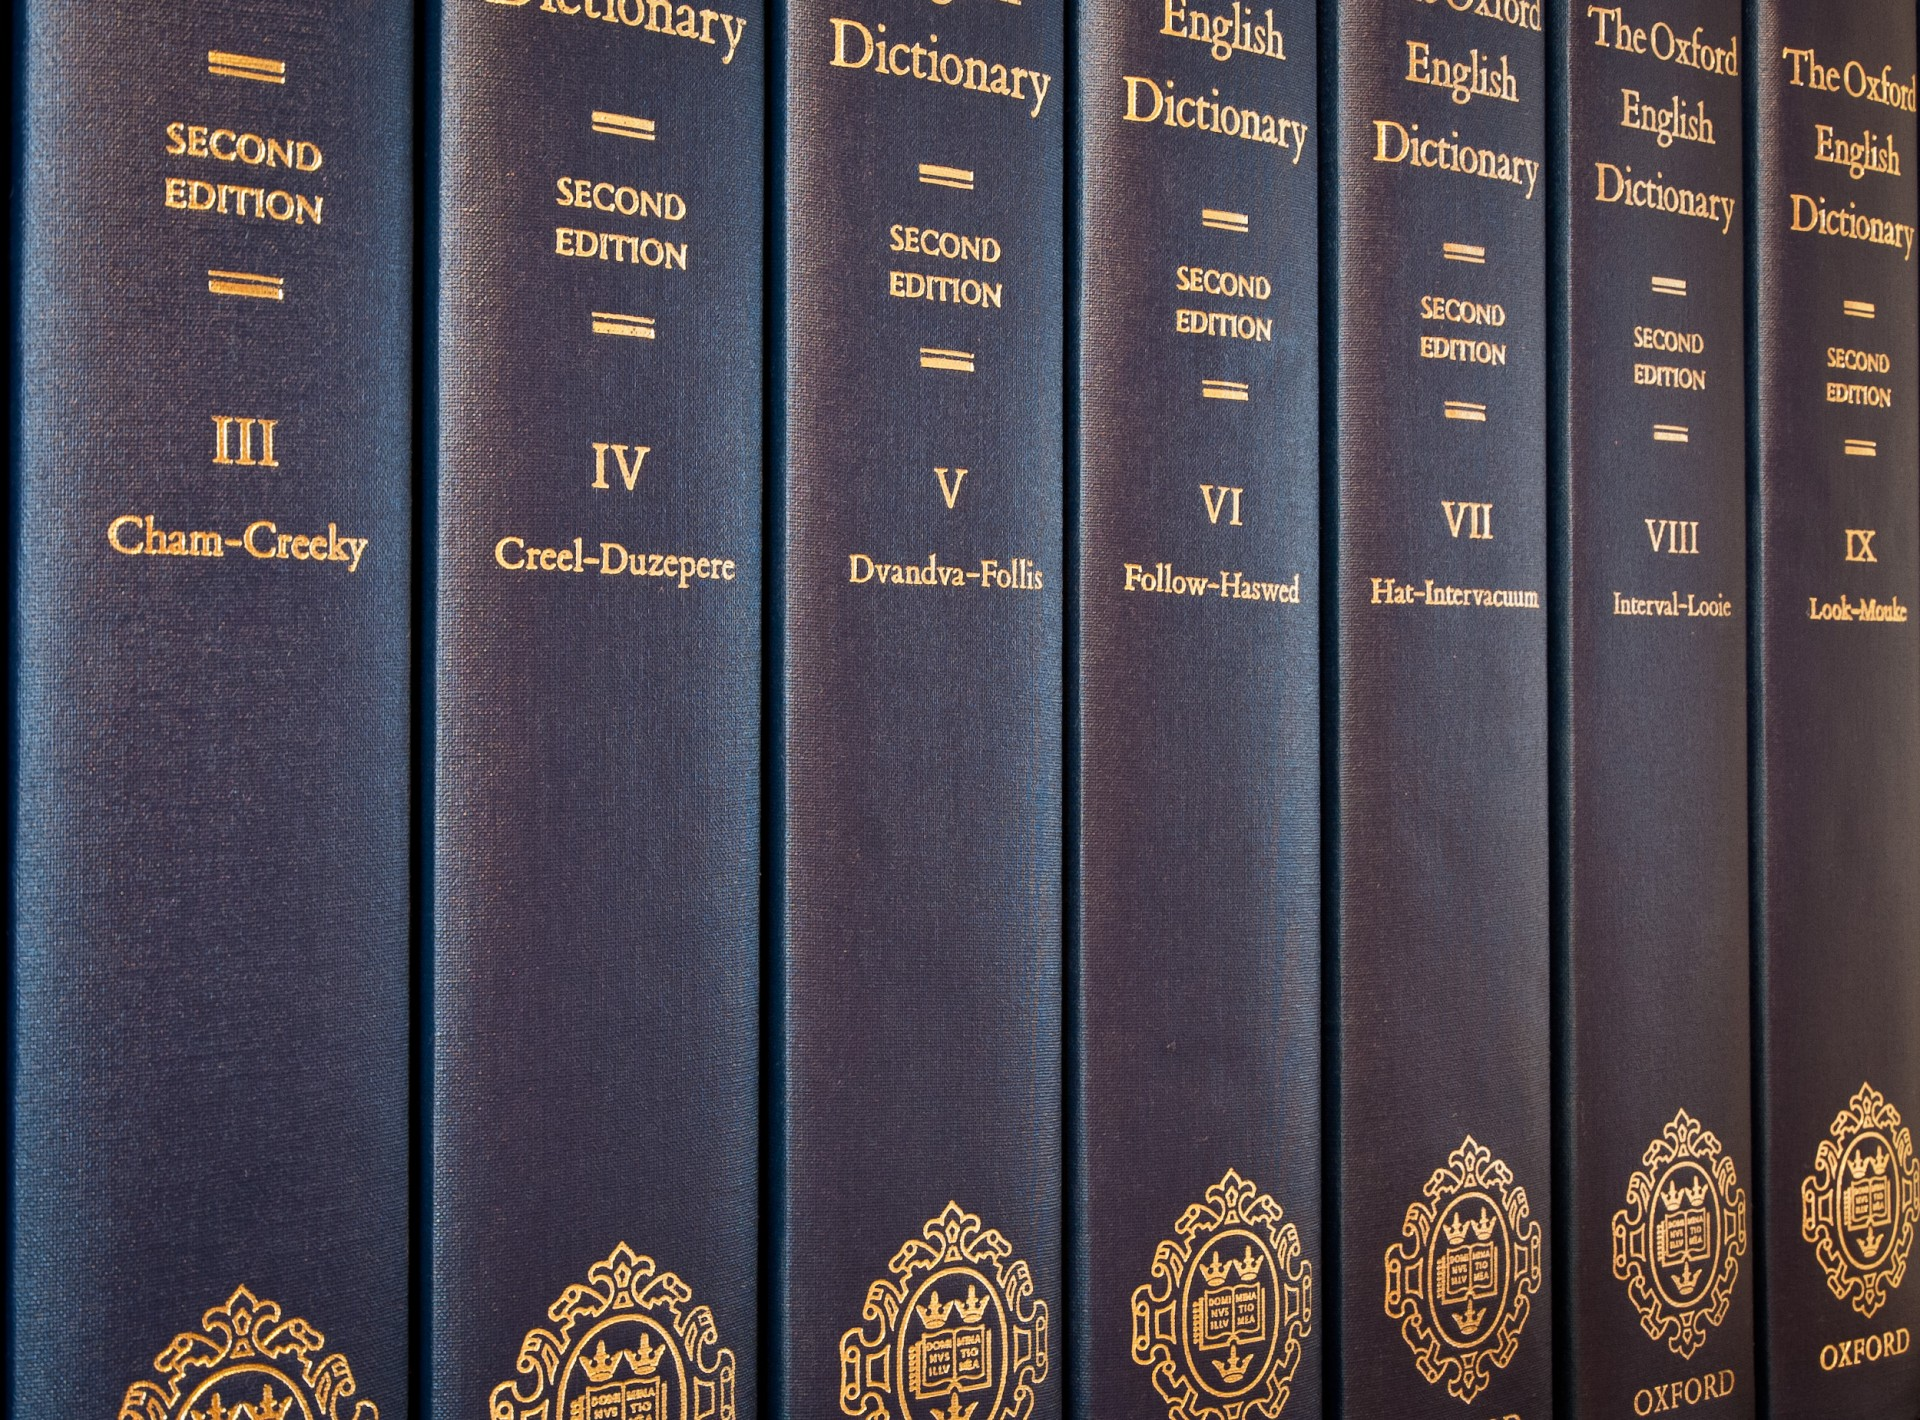 024 Oed2 Volumes Manual For Writers Of Researchs Theses And Dissertations Magnificent Research Papers A 8th Ed Pdf 1920